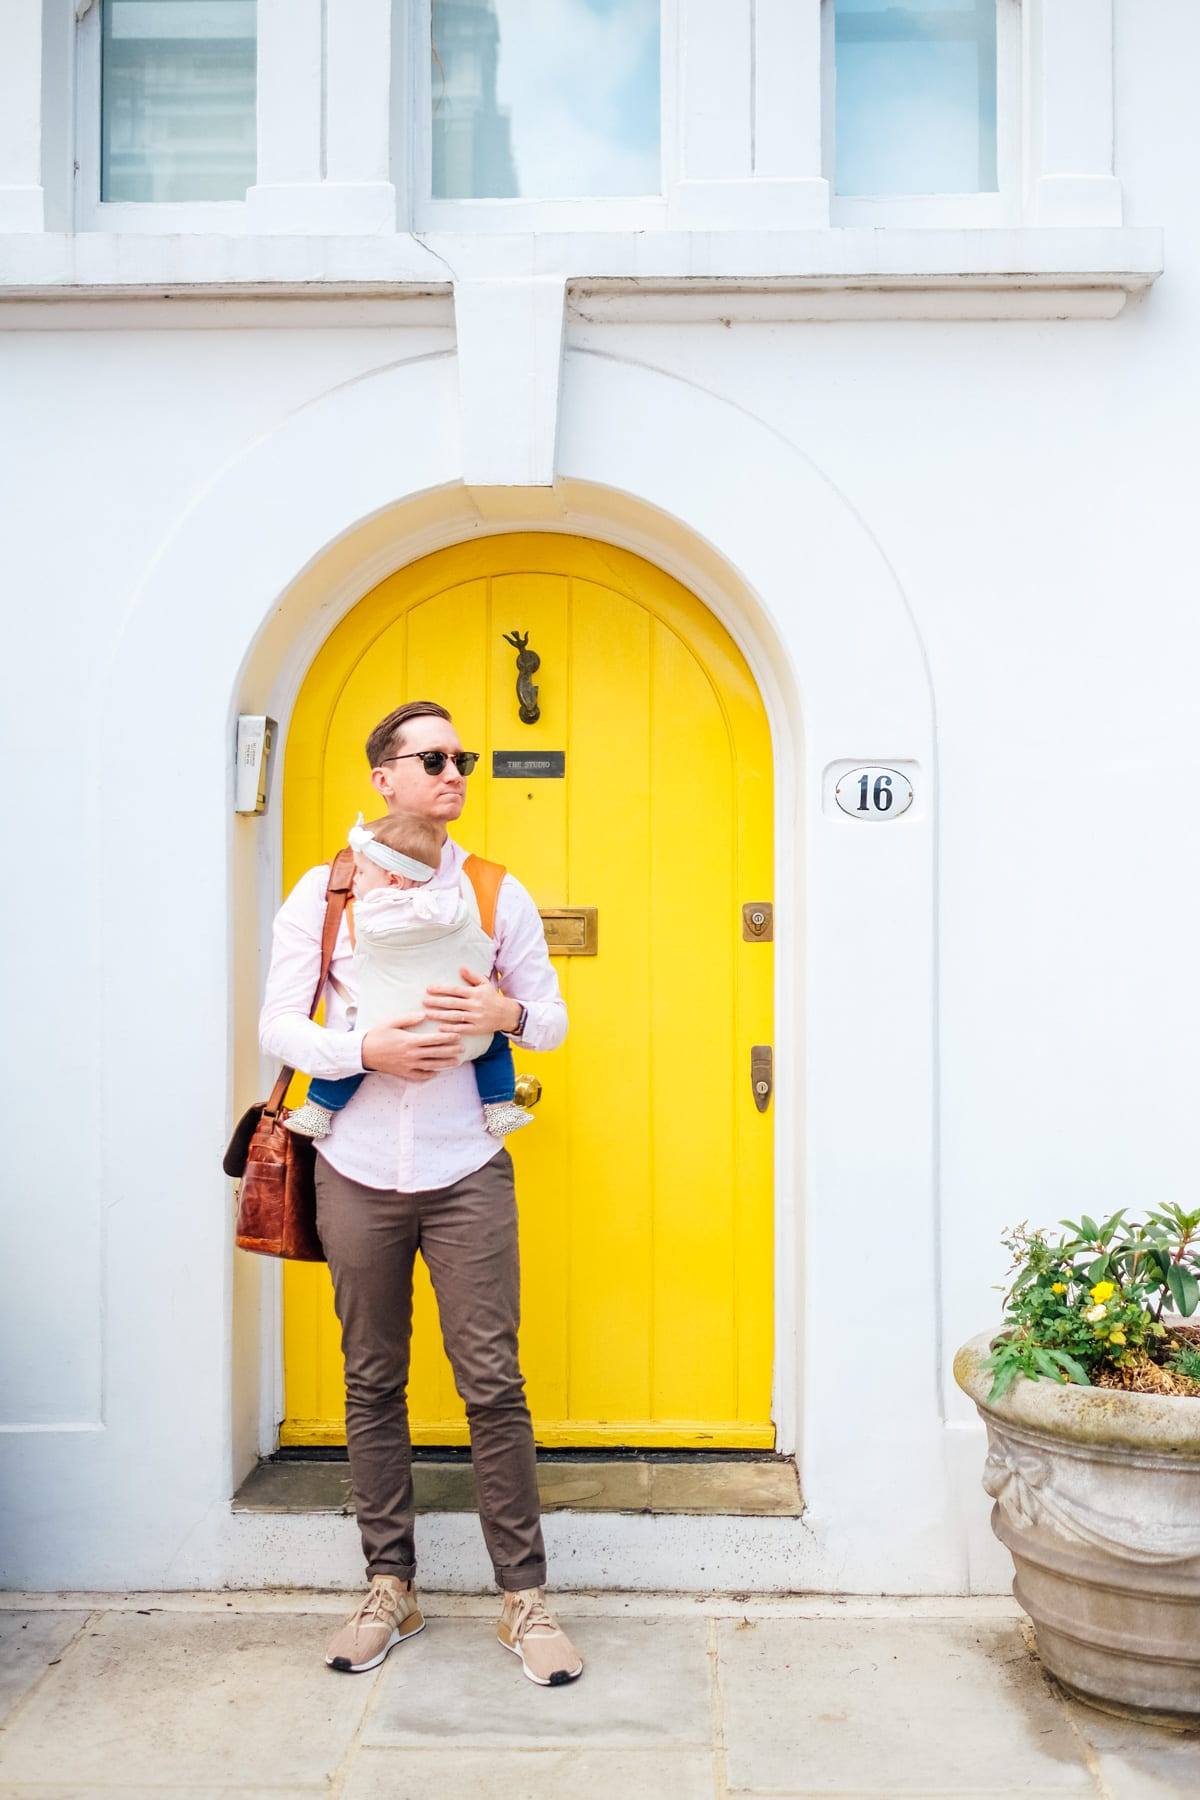 Yellow front door in Kensington, London! Photos of Our British Isles Cruise with Family! | Part 1 # travel #familytravel #cruise #decor #design #britishisles